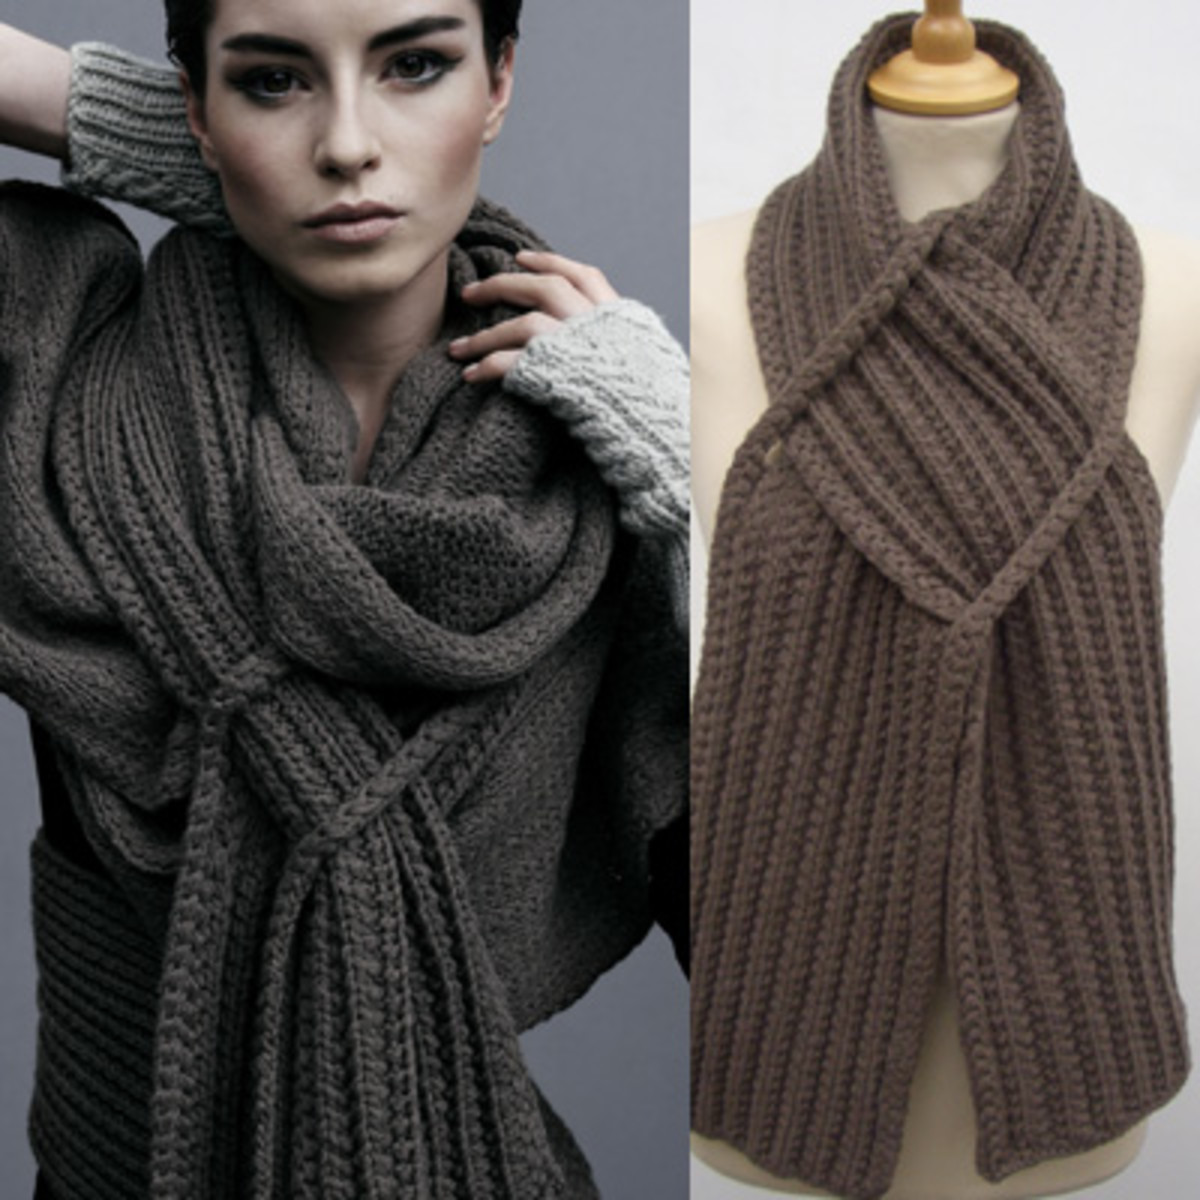 This tangled scarf looks very cozy.